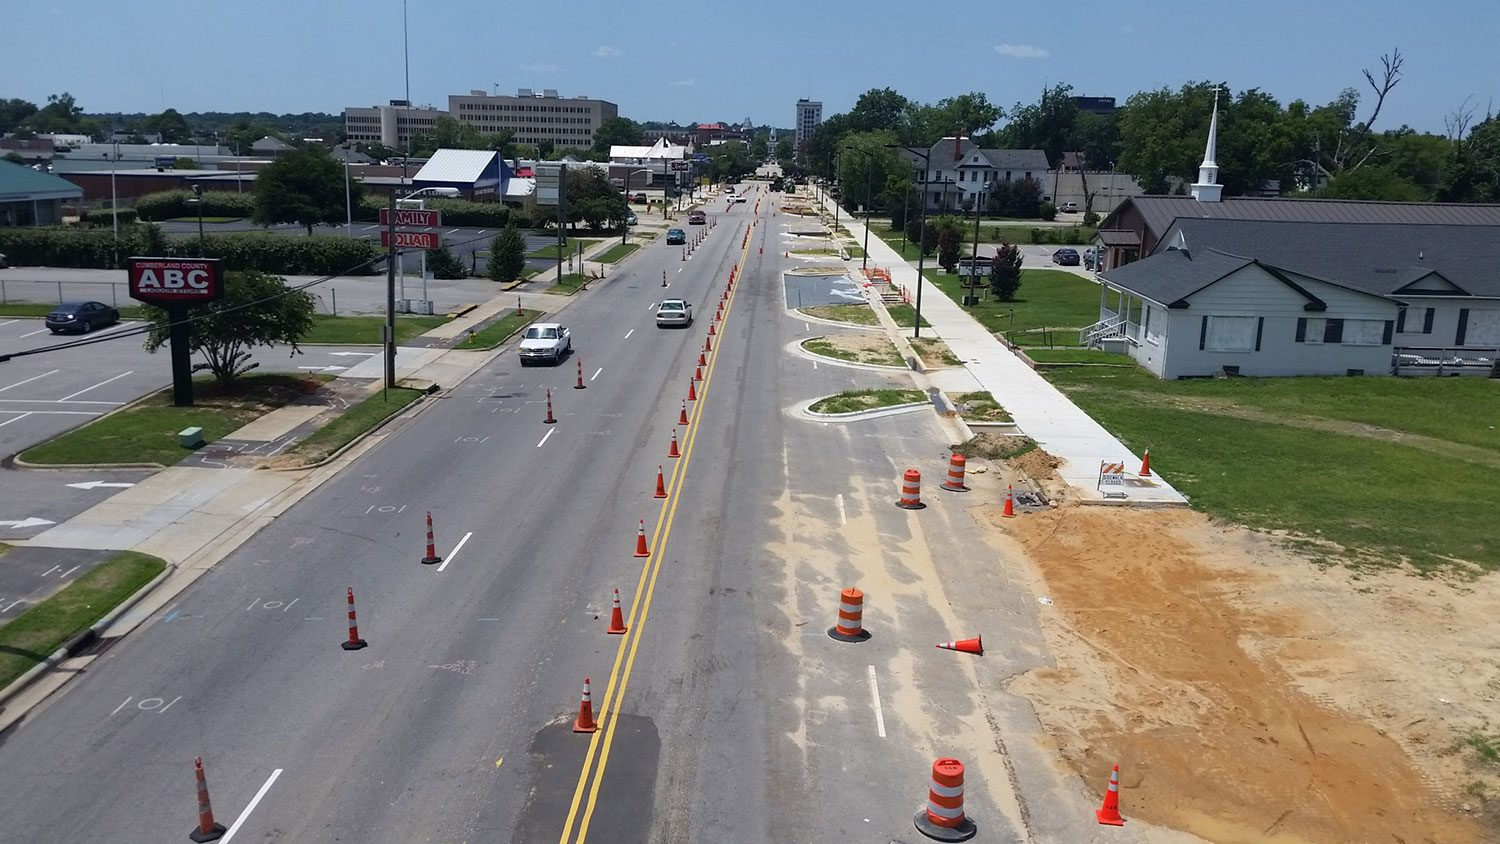 Photo of the construction in downtown Fayetteville, NC.